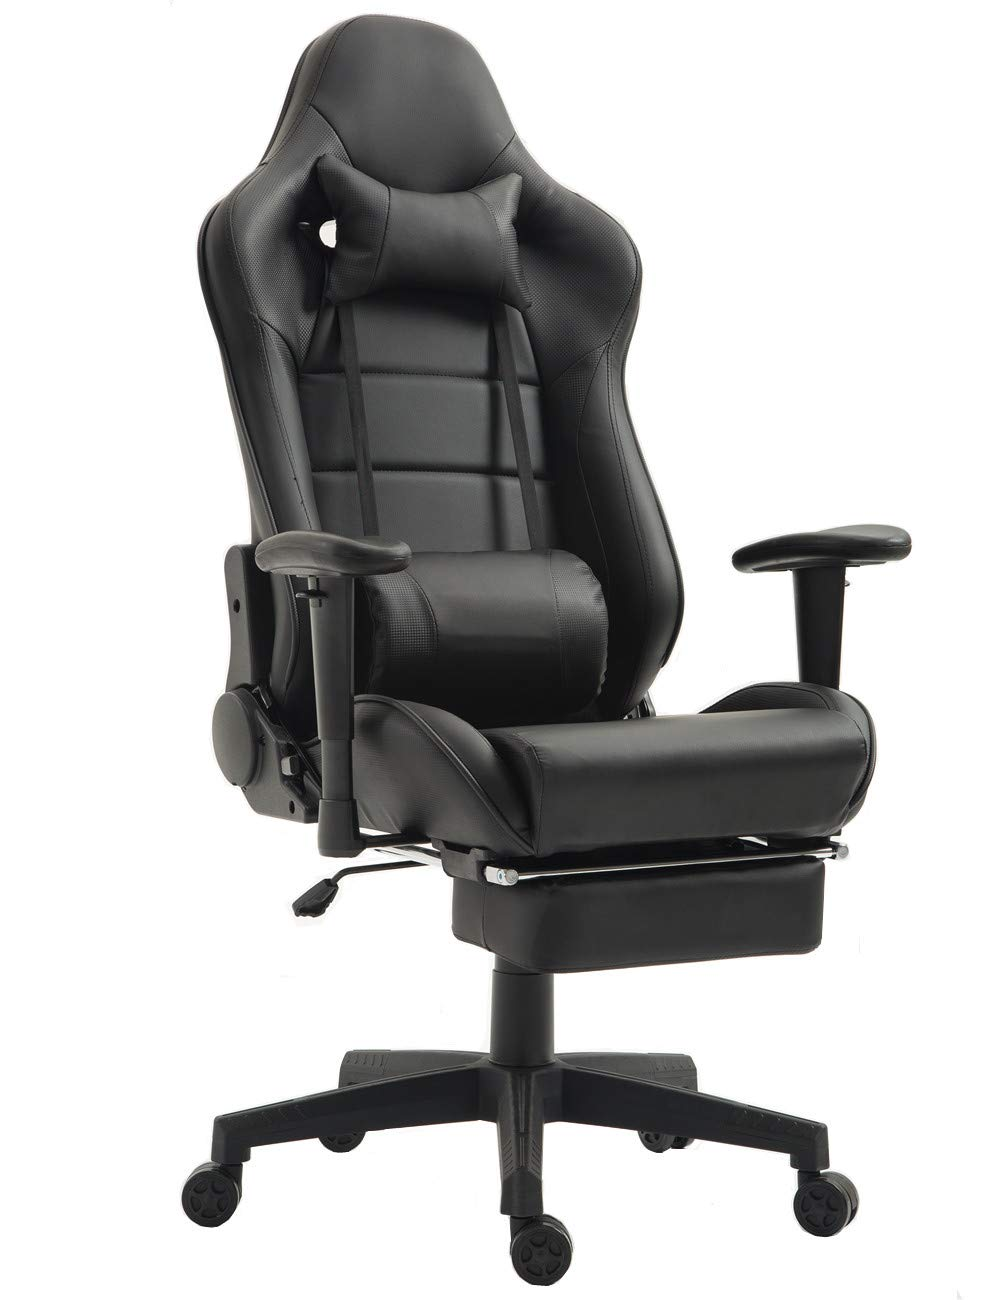 Memory Foam Gaming Chair Ergonomic High-Back Computer Chair Massage Reclining Racing Desk Office Chair with Retractable Footrest and Adjustable Lumbar Cushion (Black)